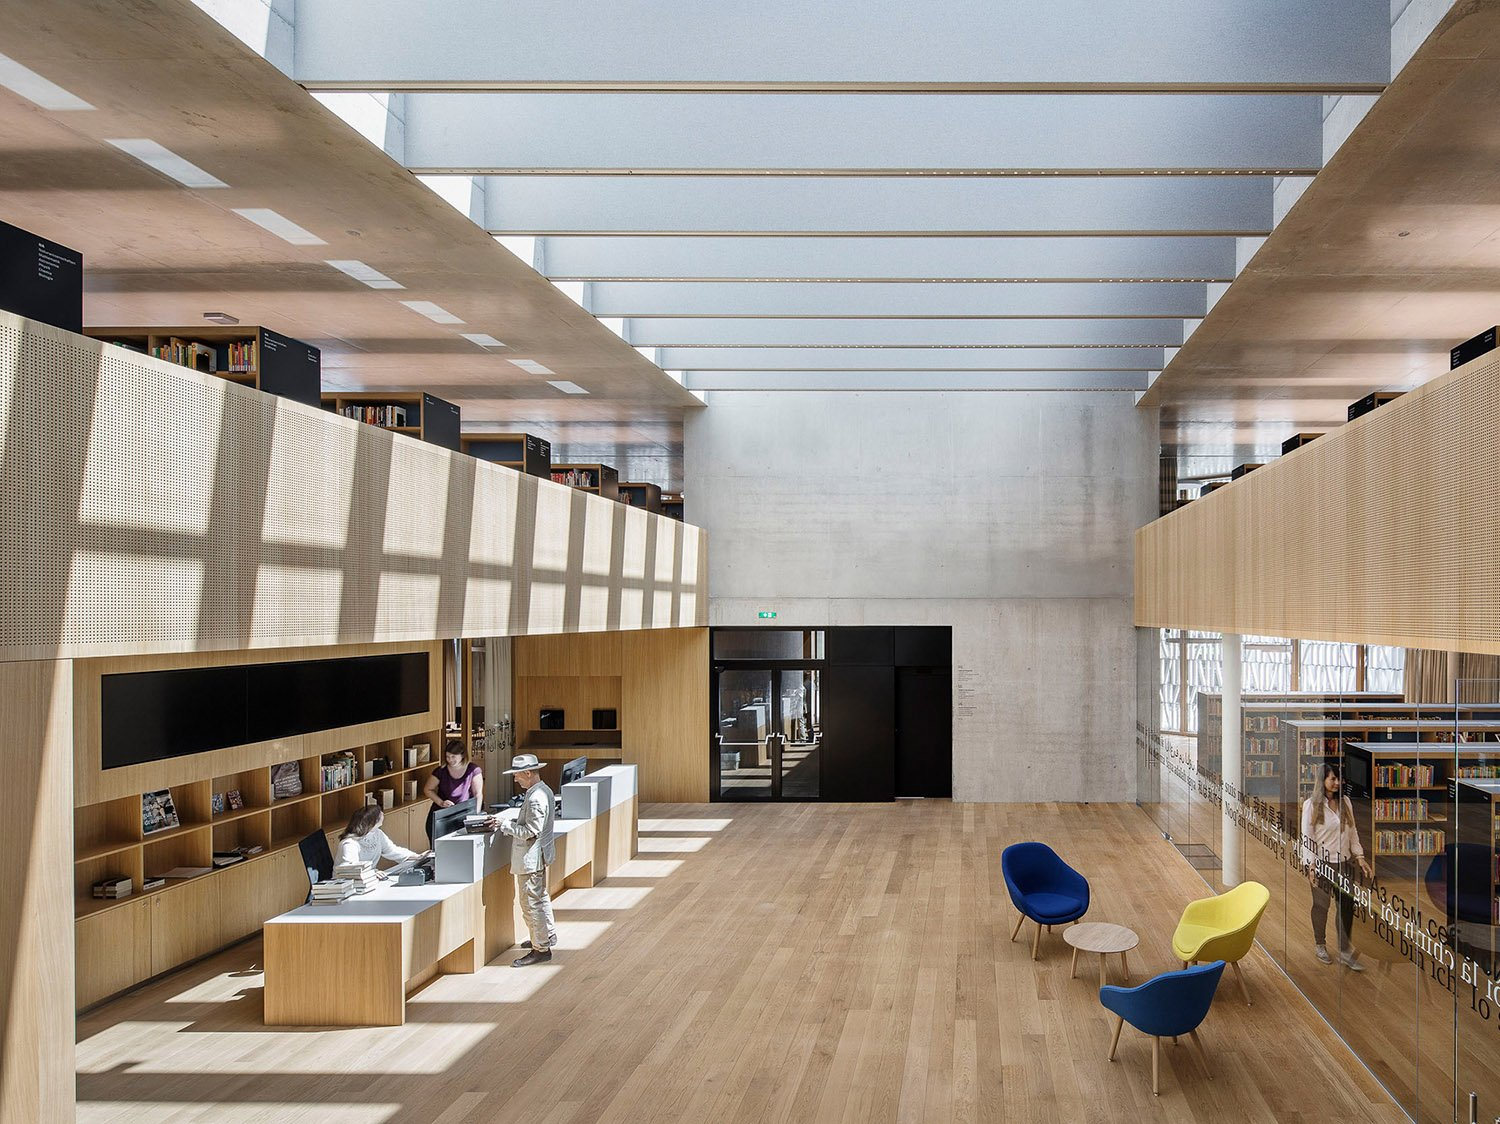 The double height auditorium flooded with natural light from its central atrium. Albrecht I. Schnabel